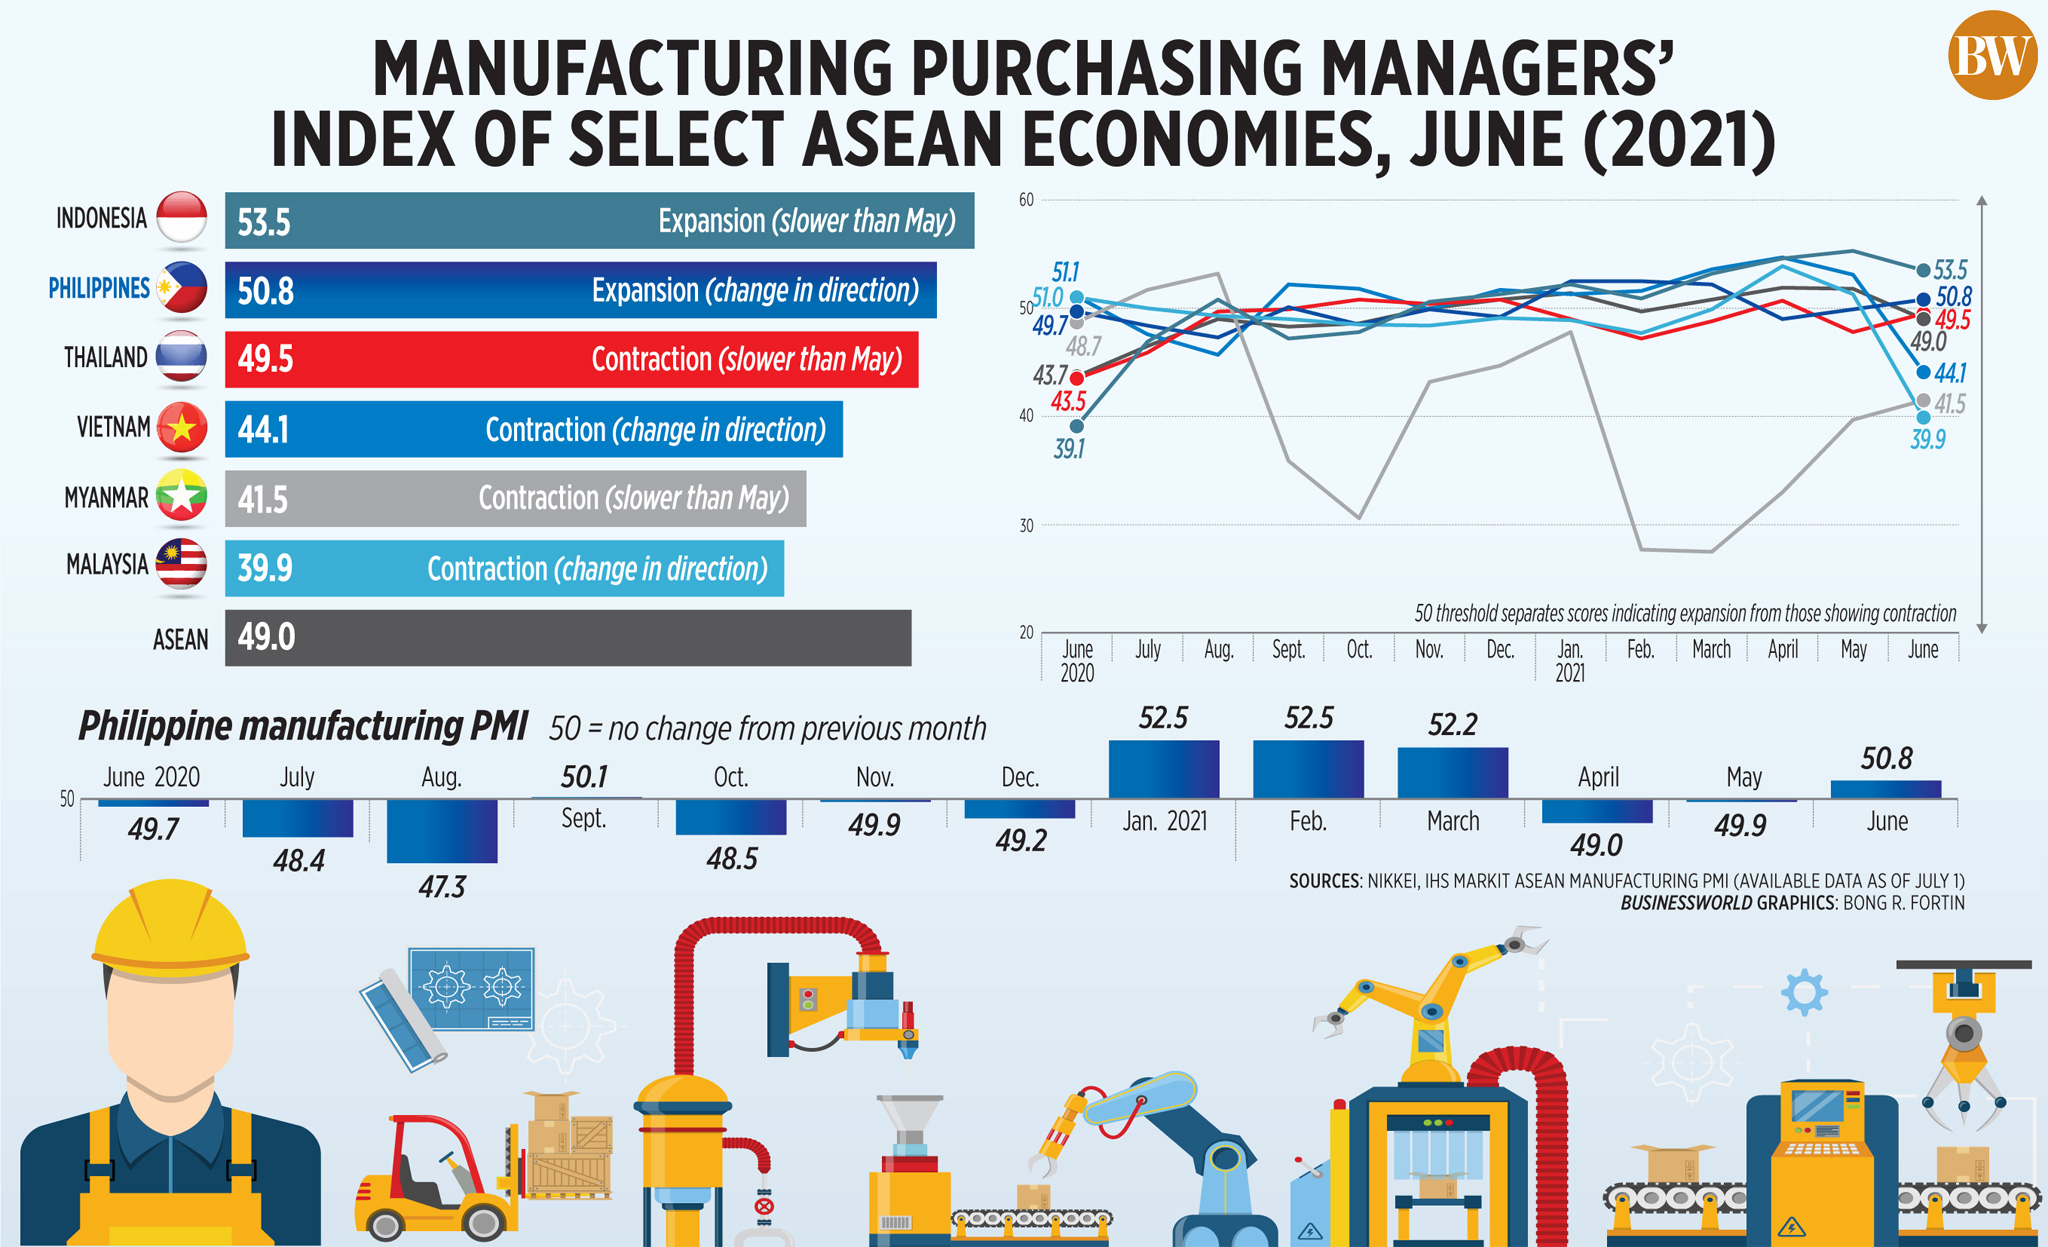 Manufacturing Purchasing Managers' index of select ASEAN economies, June (2021)